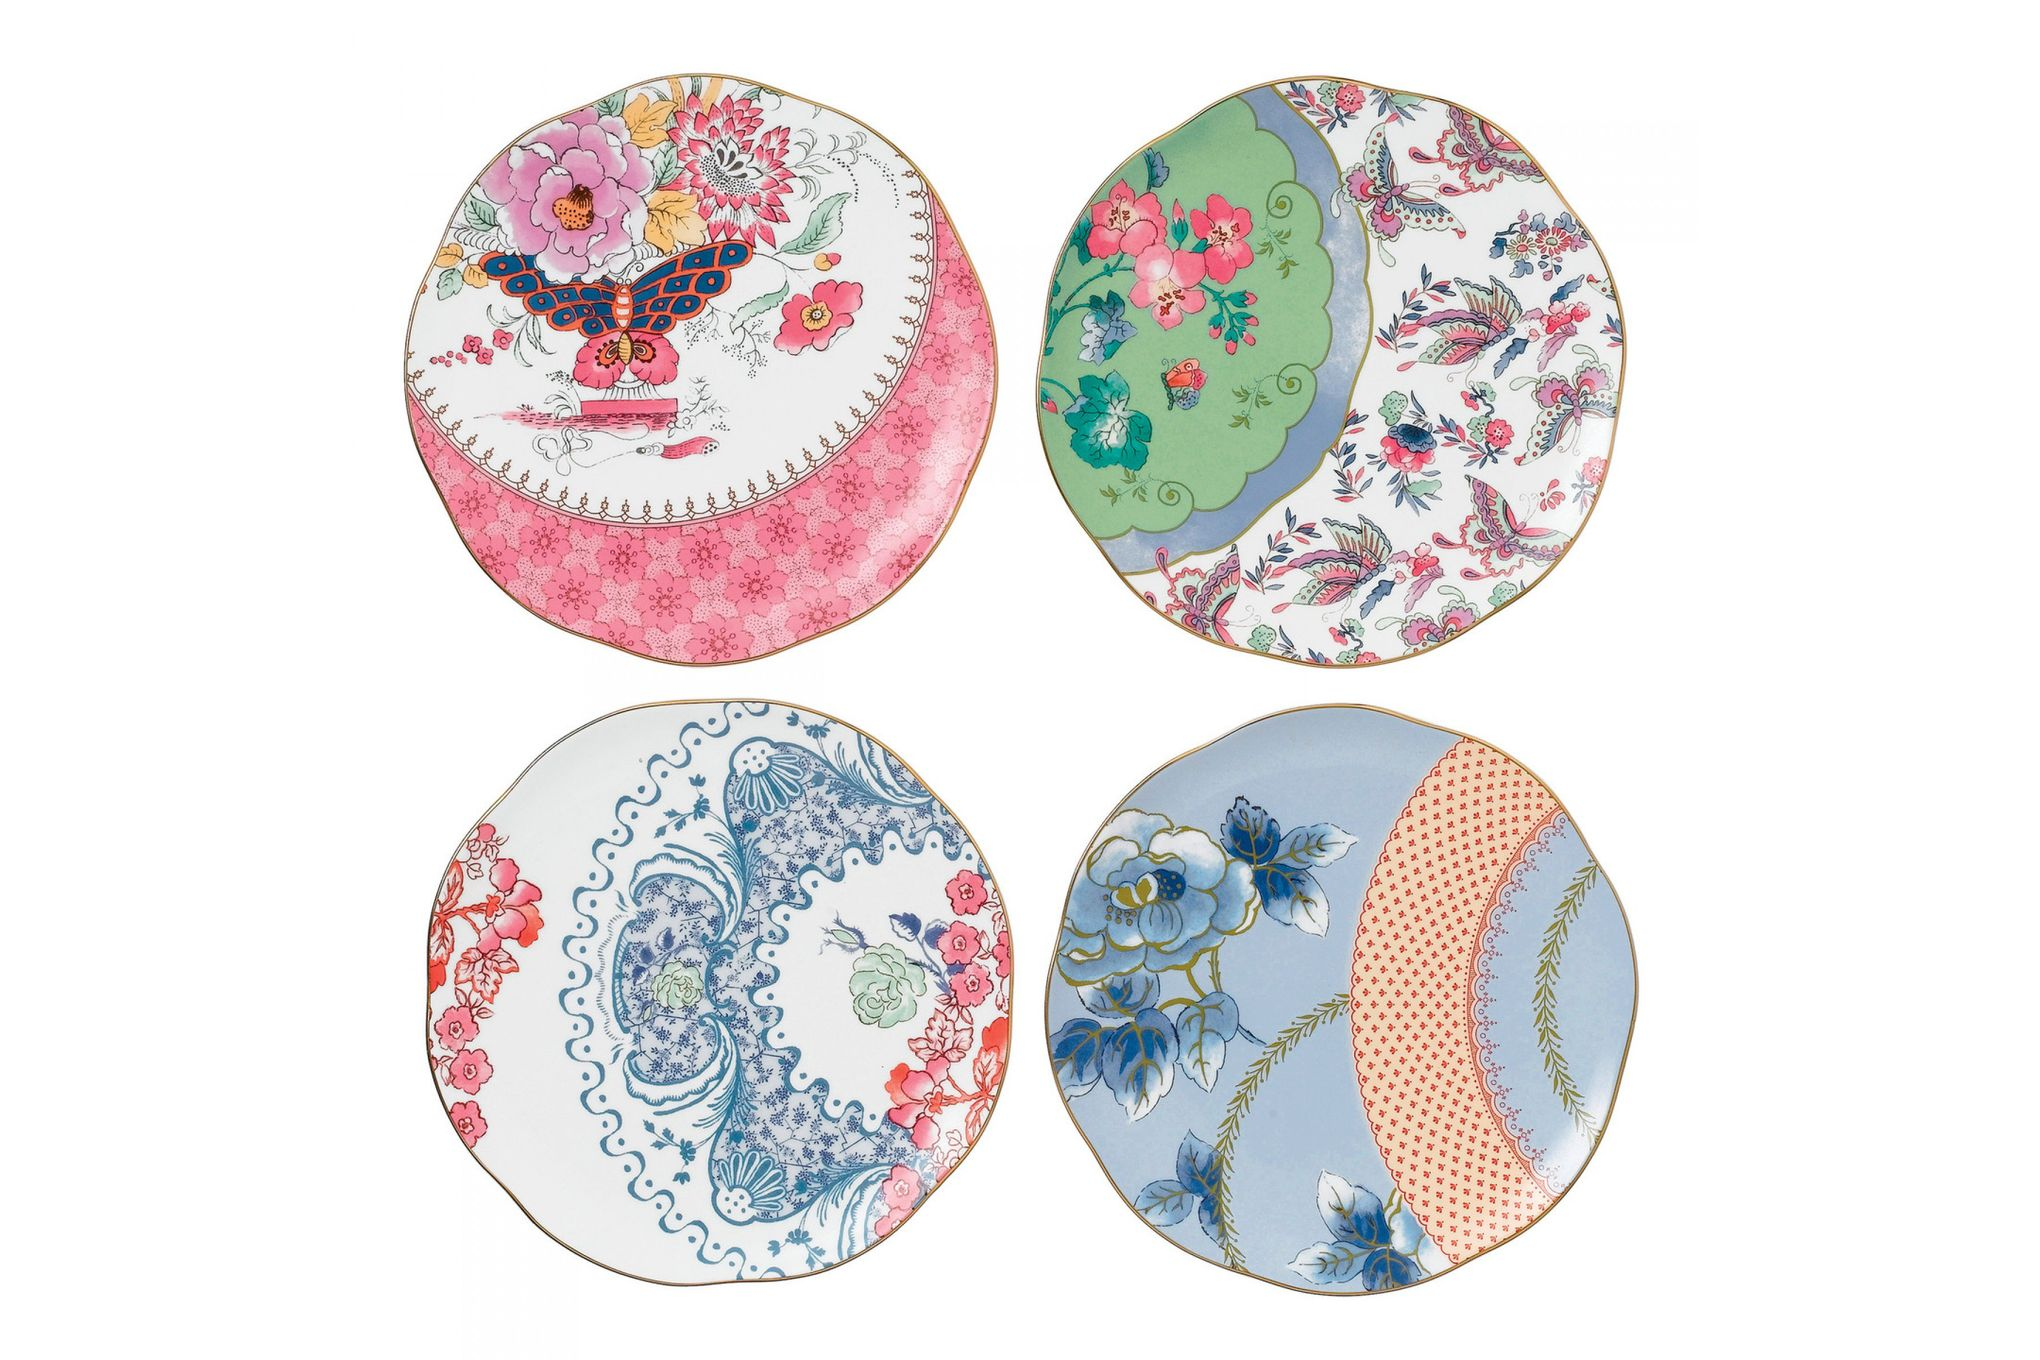 Wedgwood Butterfly Bloom Set of 4 Plates 20cm thumb 1